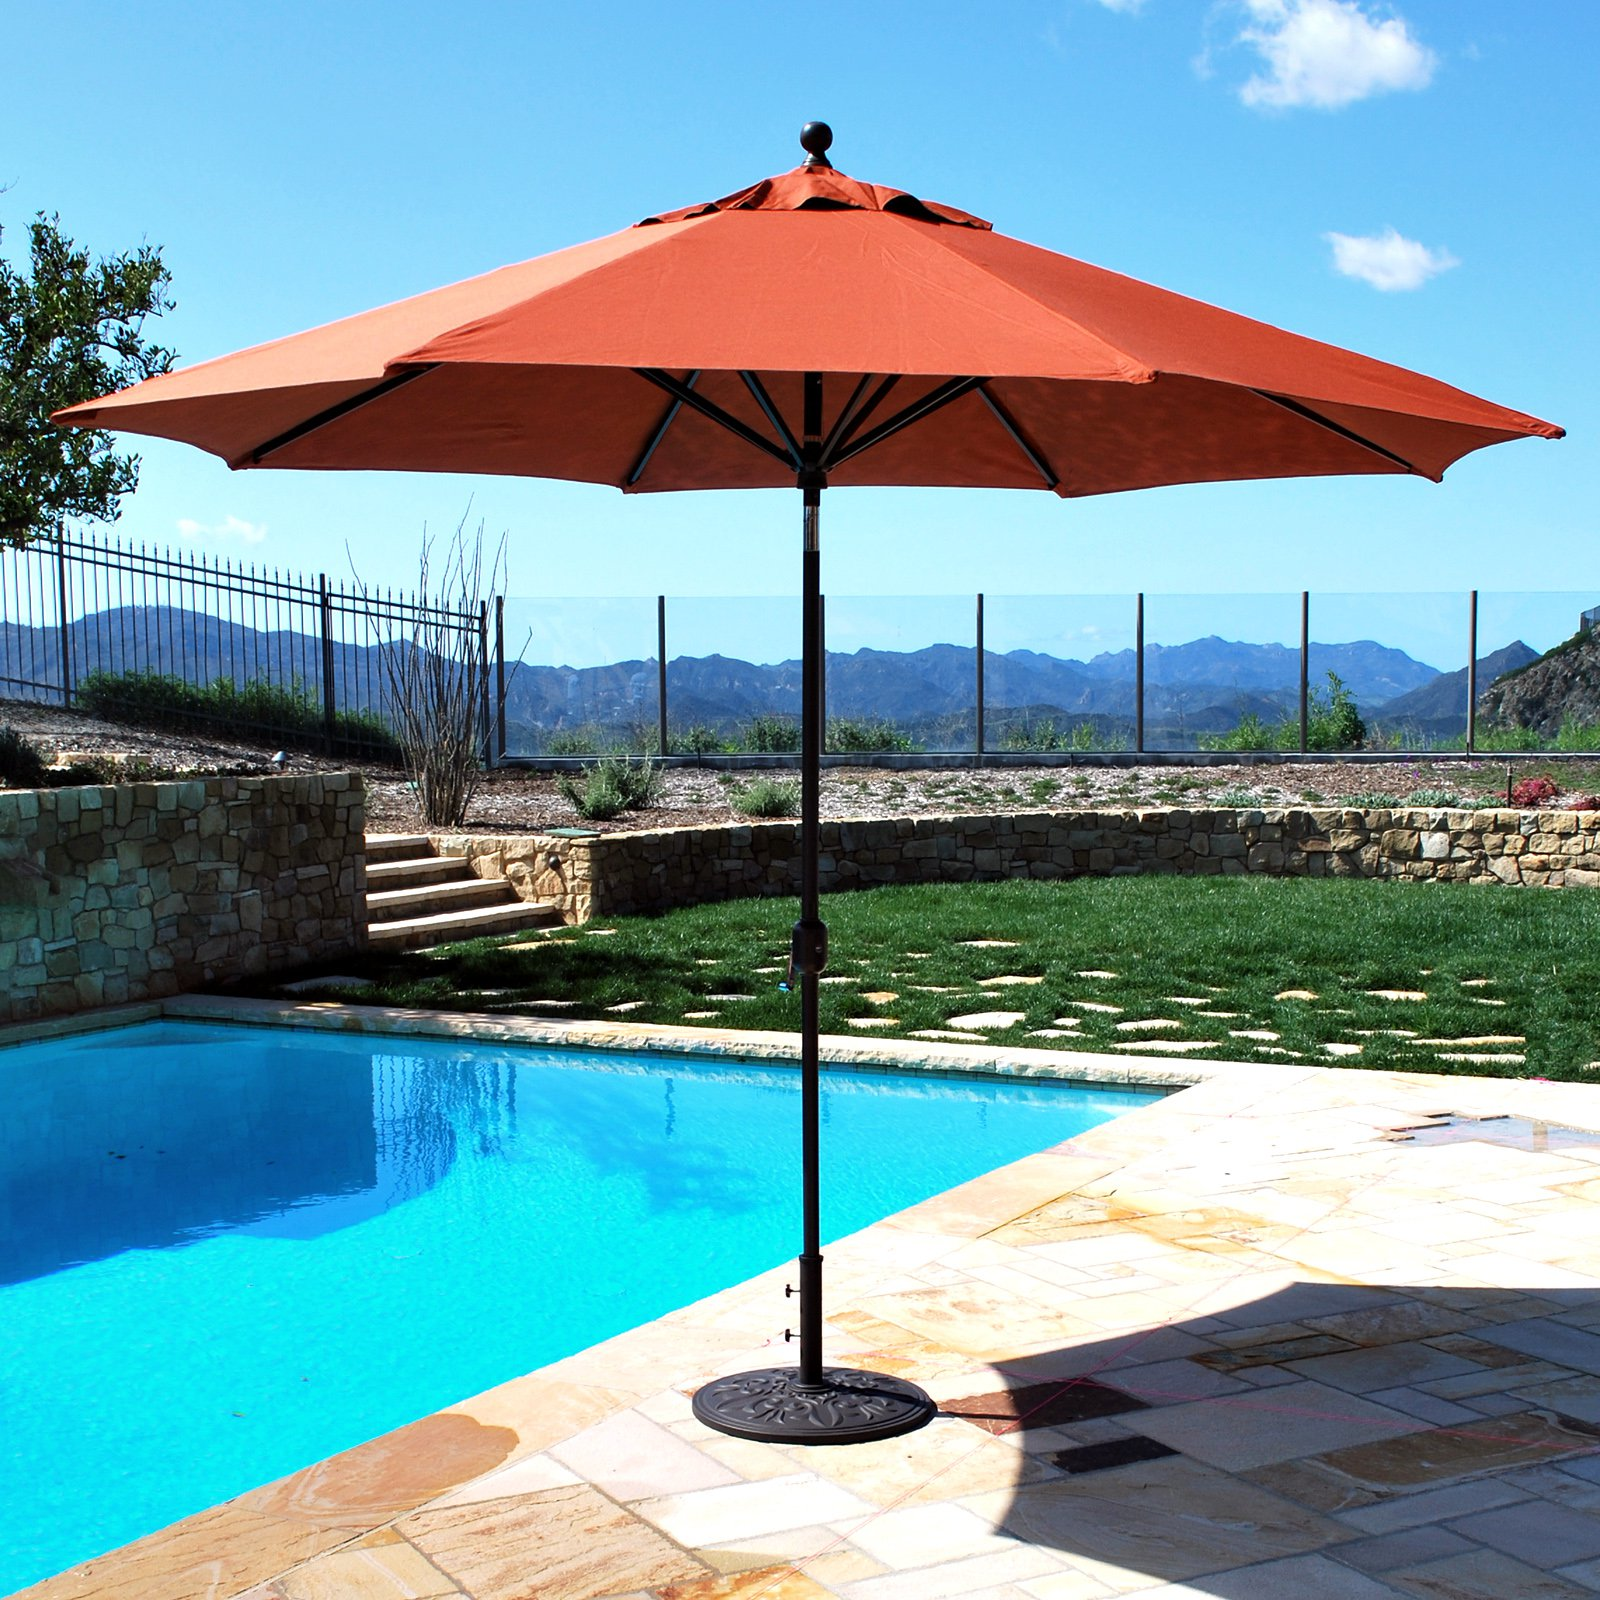 11 Ft Patio Umbrella | Costco Offset Umbrella | Nautica Umbrella